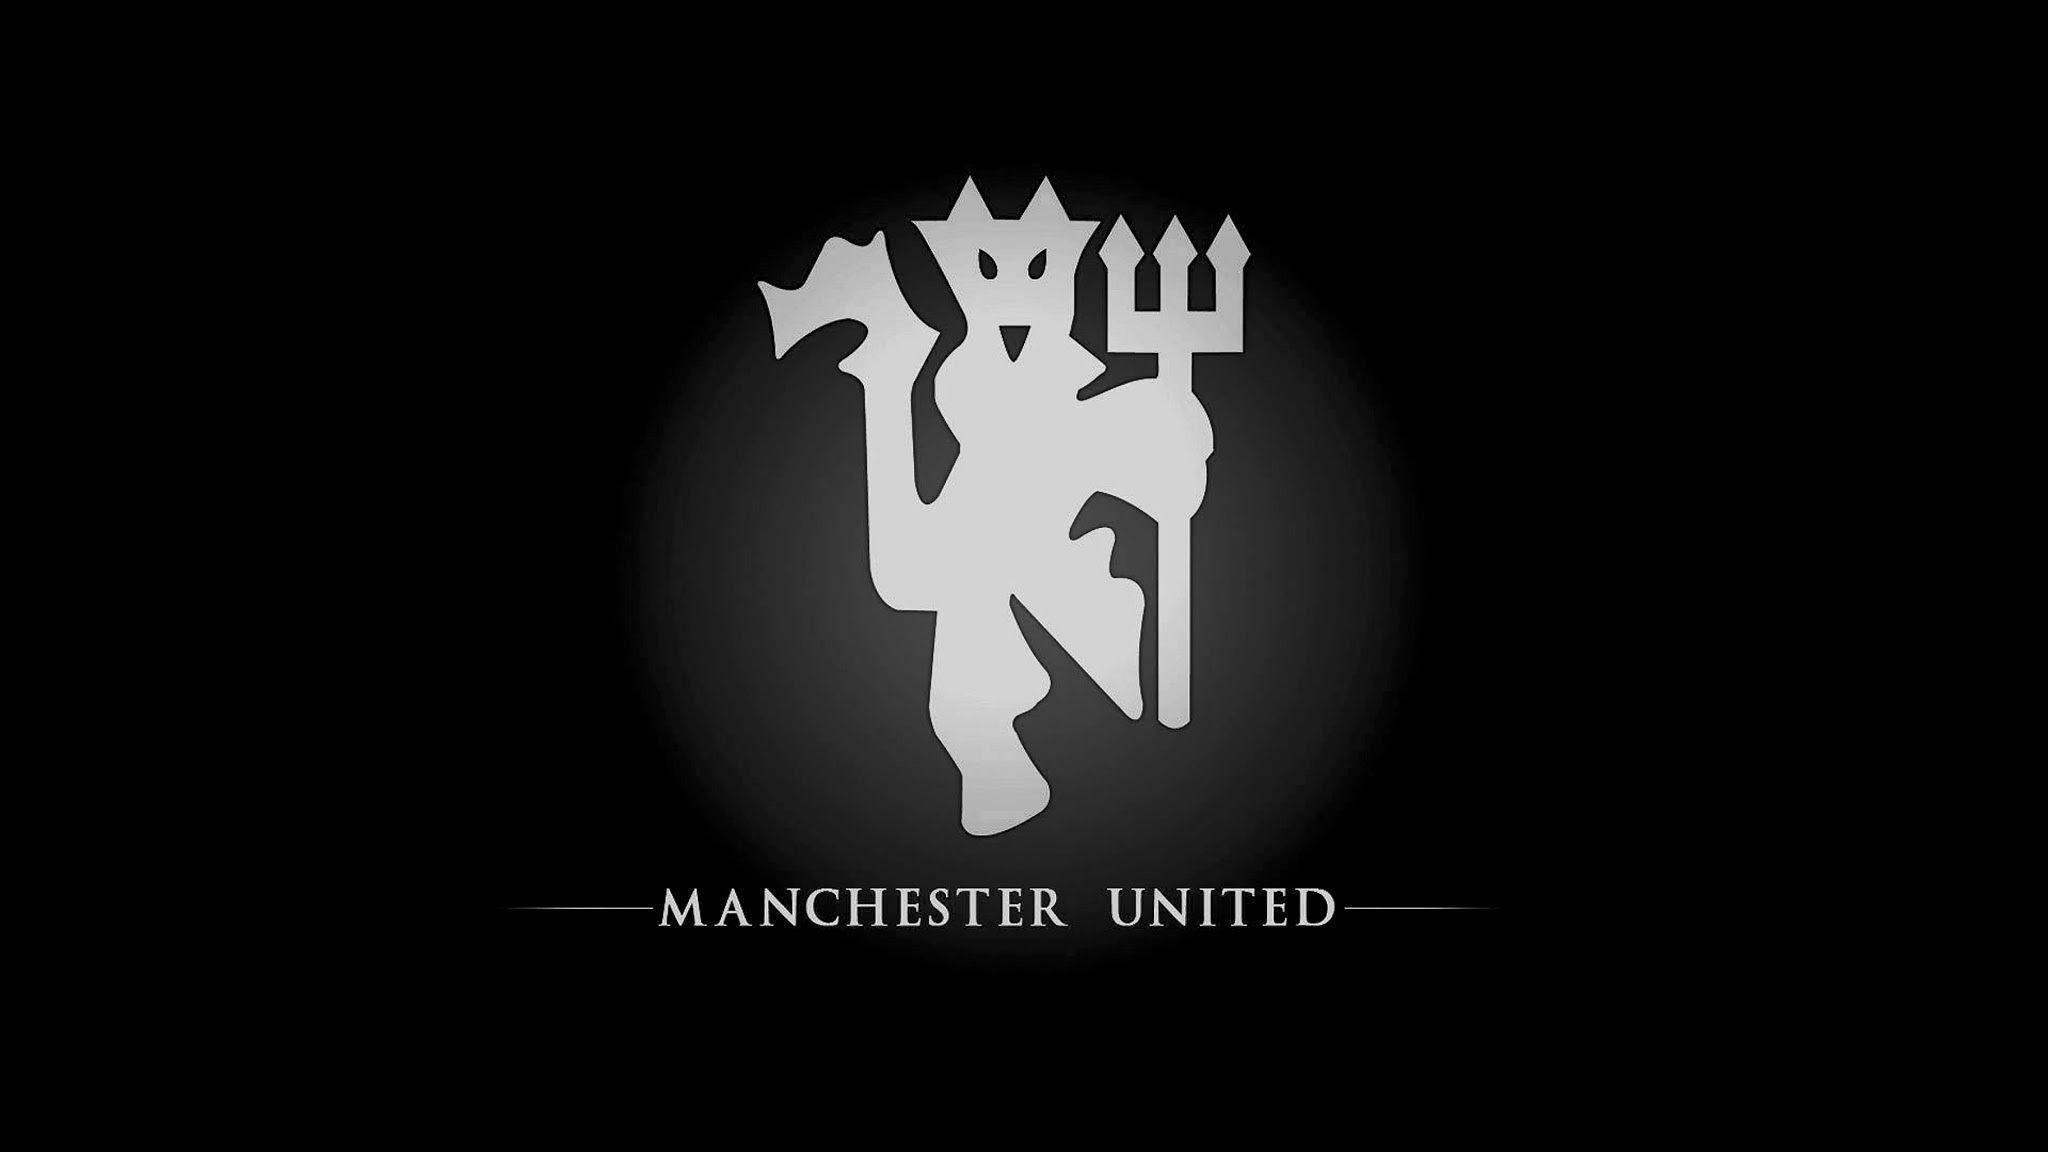 manchester united logo wallpapers hd 2016 wallpaper cave